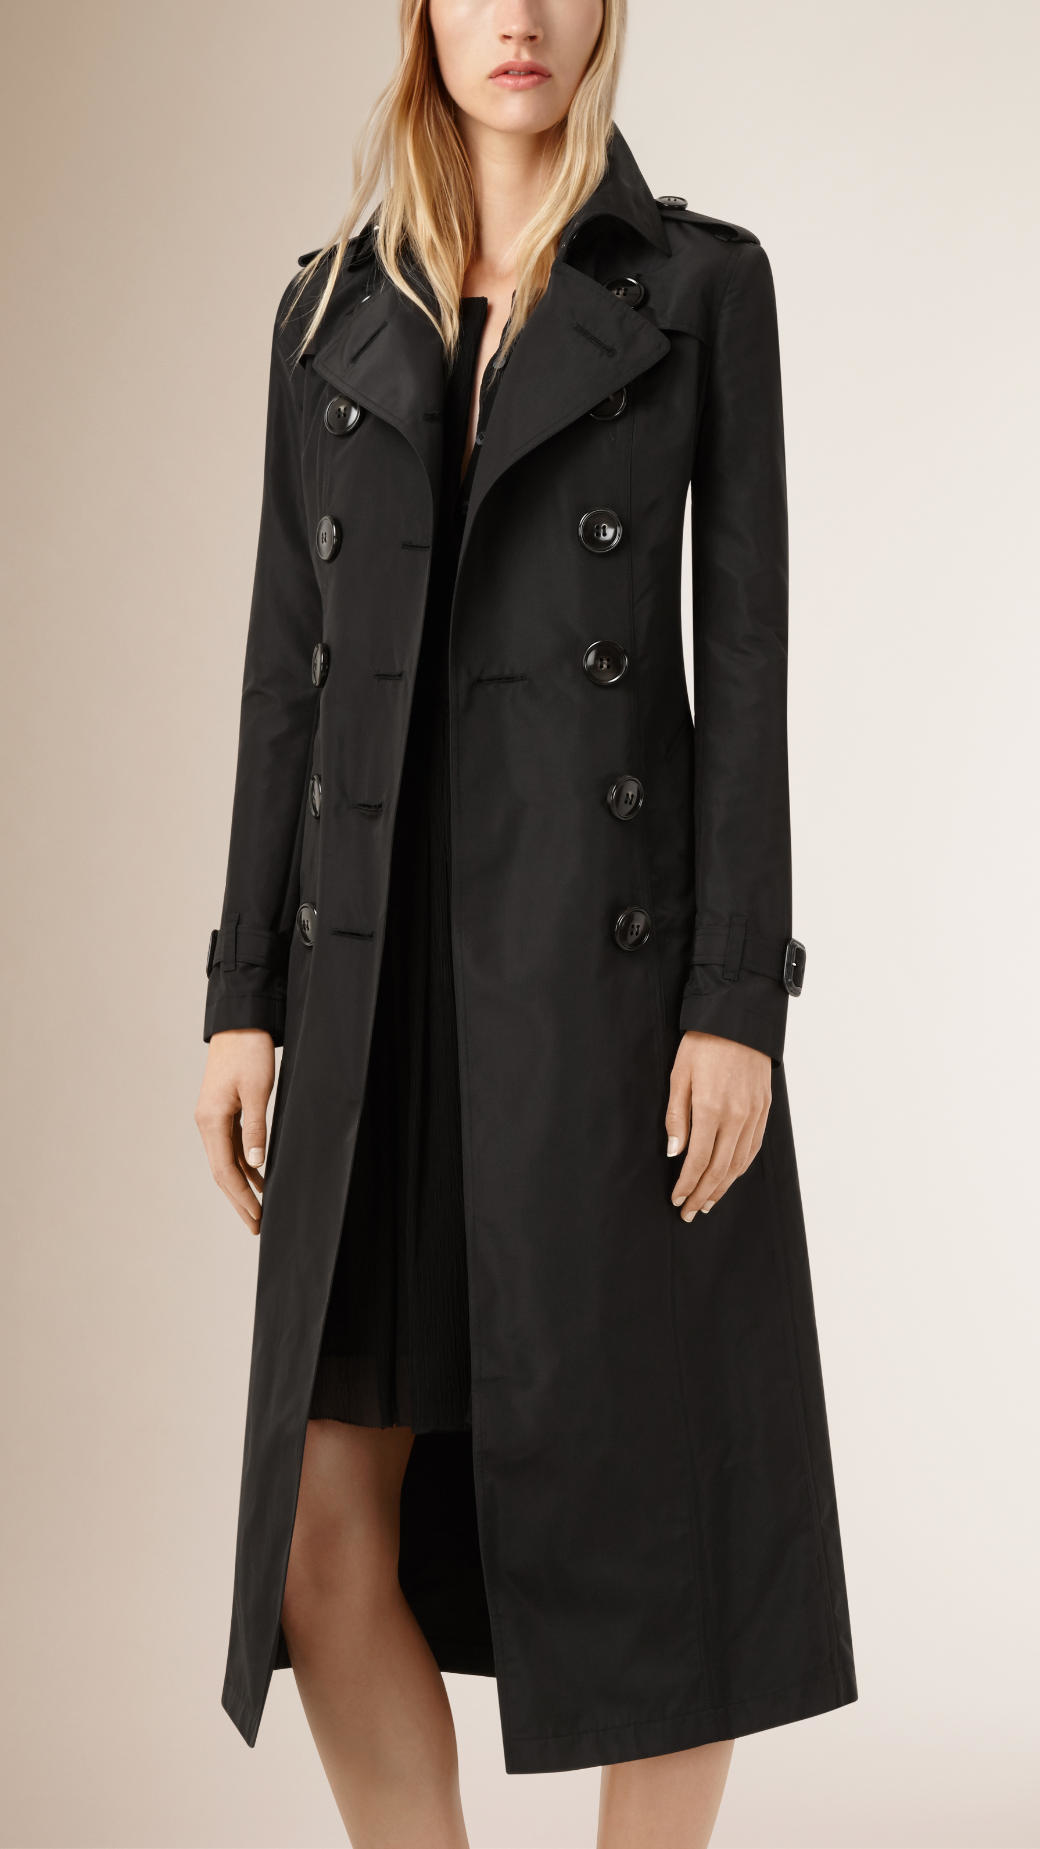 Burberry Black Silk Trench Coat Pick A Size 36 40 44 46 View